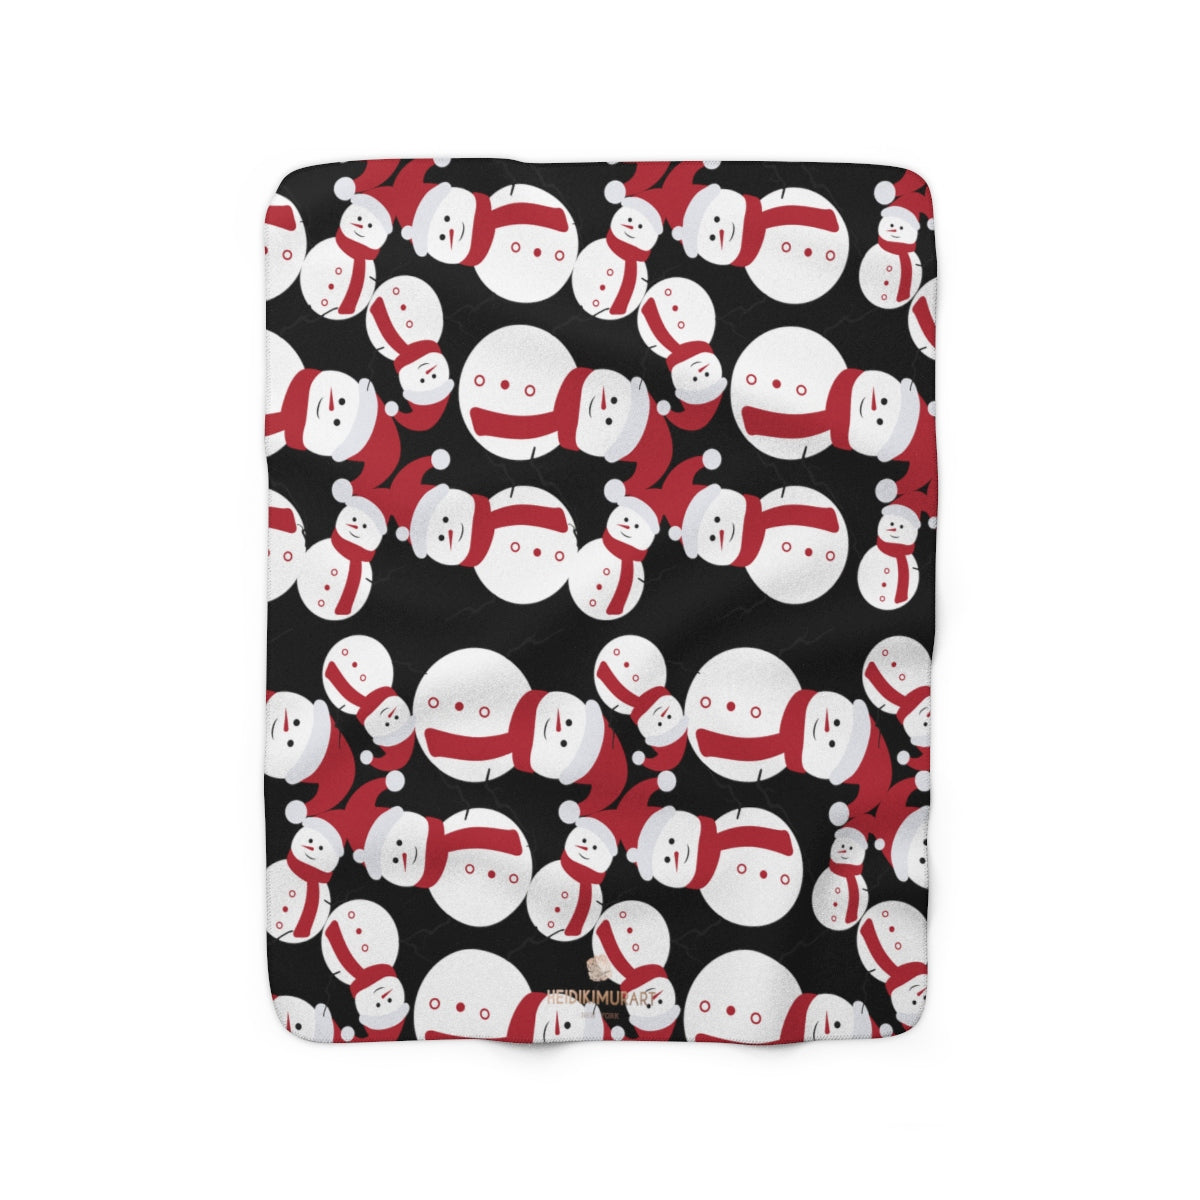 Black White Red Christmas Cute Fluffy Snowman Print Cozy Sherpa Fleece Blanket-Blanket-50'' x 60''-Heidi Kimura Art LLC Black Christmas Fleece Blanket, Black White Red Christmas Cute Fluffy Snowman Print Designer Soft Comfortable Sherpa Fleece Blanket Cozy Sherpa 100% Polyester Fleece Blanket With Plush Backside - Made in USA